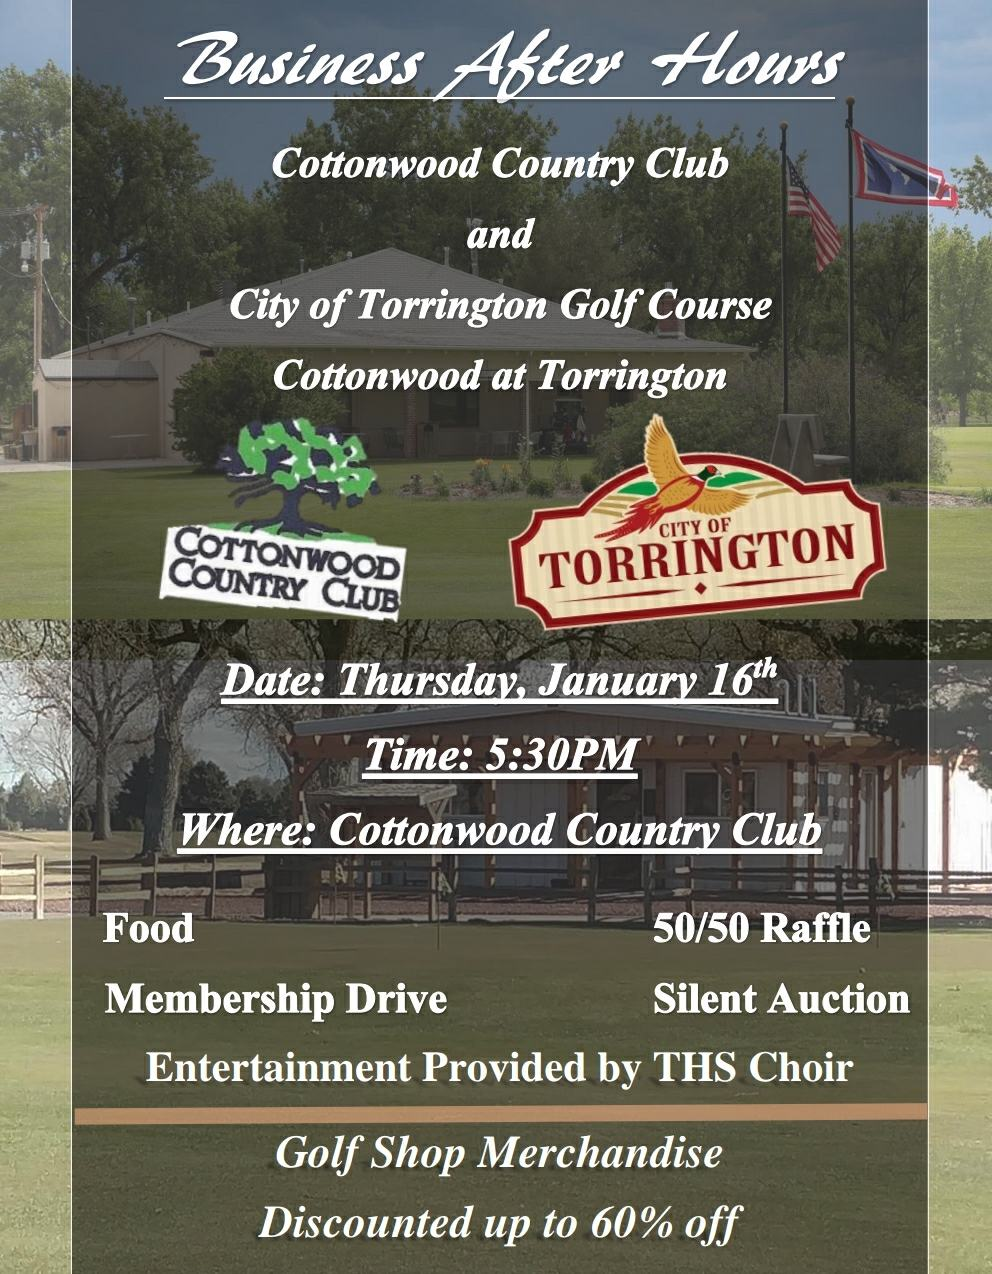 Business After Hours at Cottonwood Country Club & City of Torrington Golf Course Photo